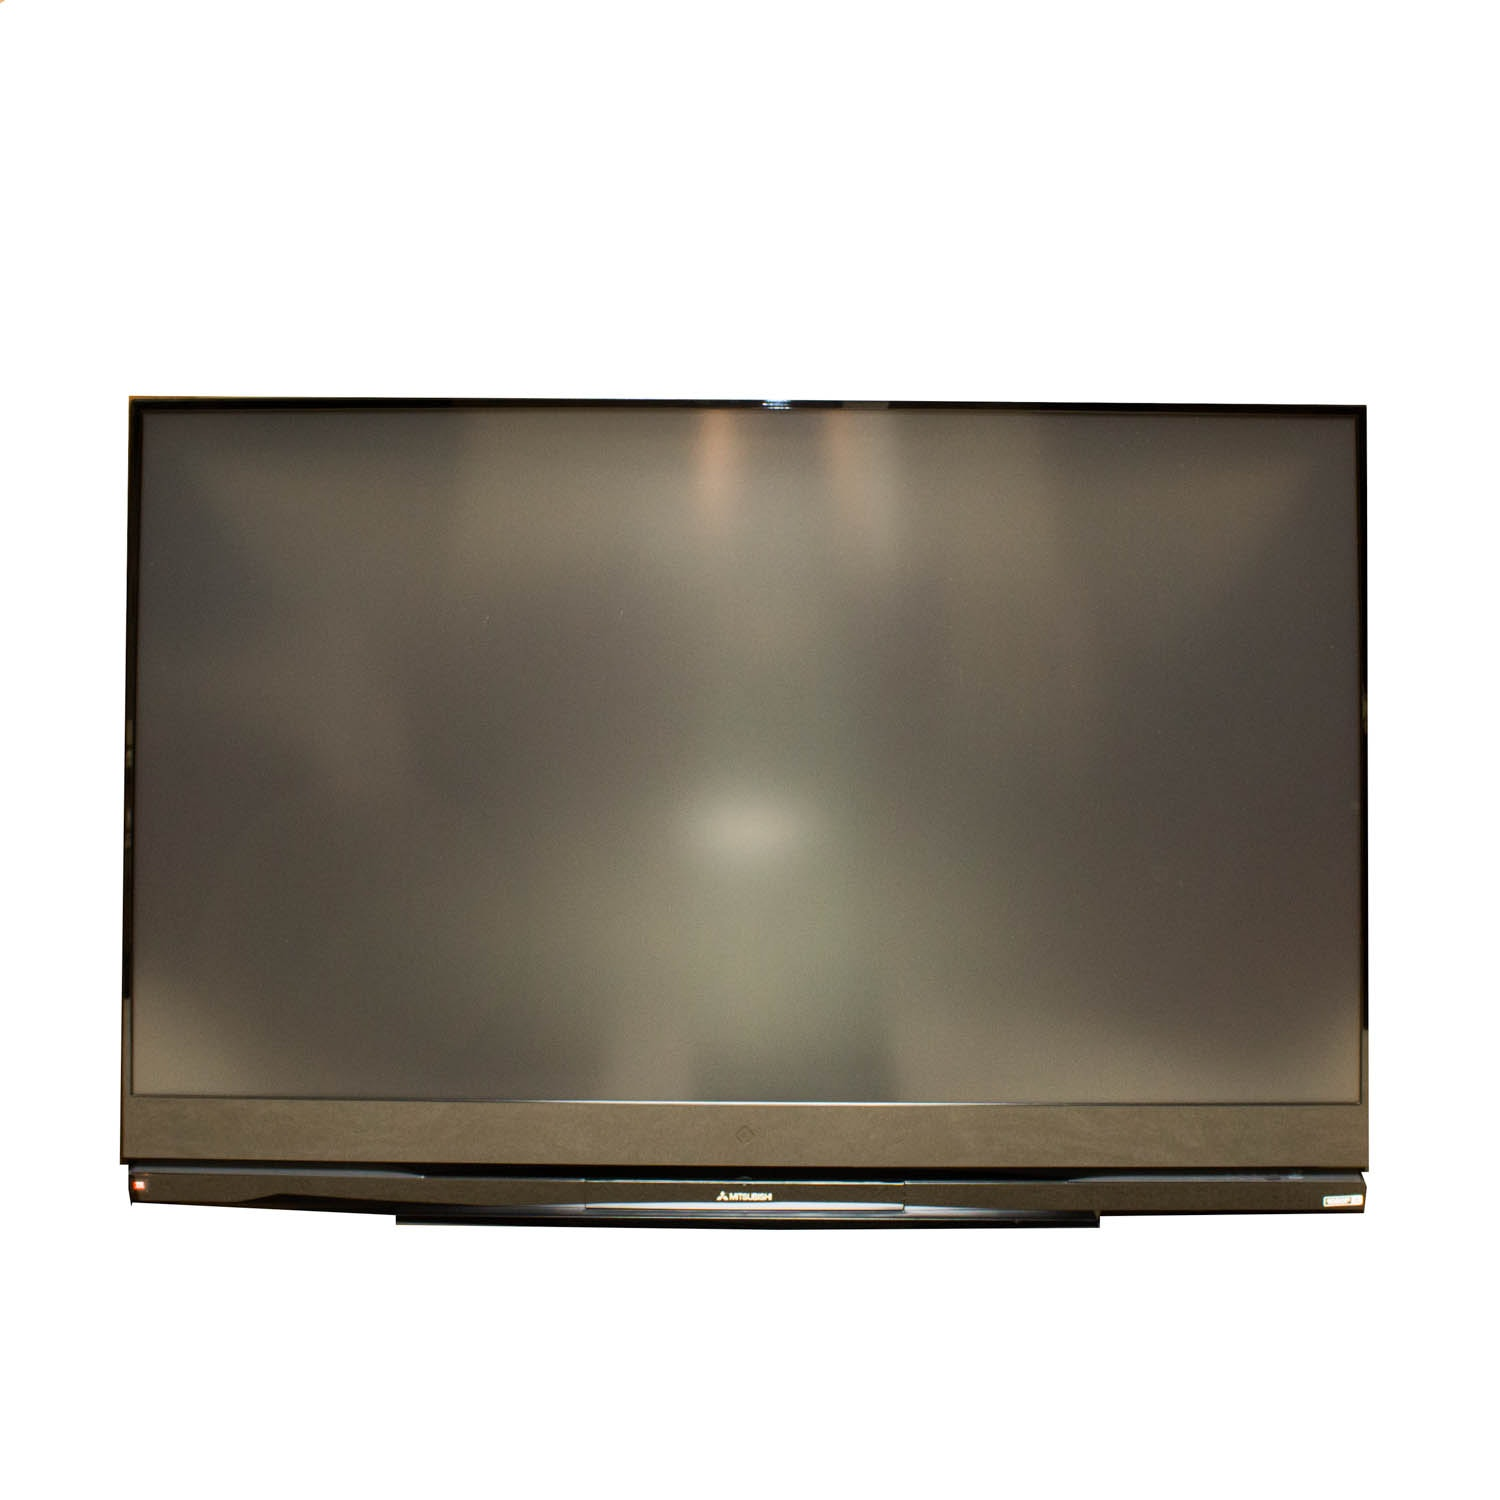 "Mitsubishi 72"" 1080p Semi-Flat Screen TV : EBTH"